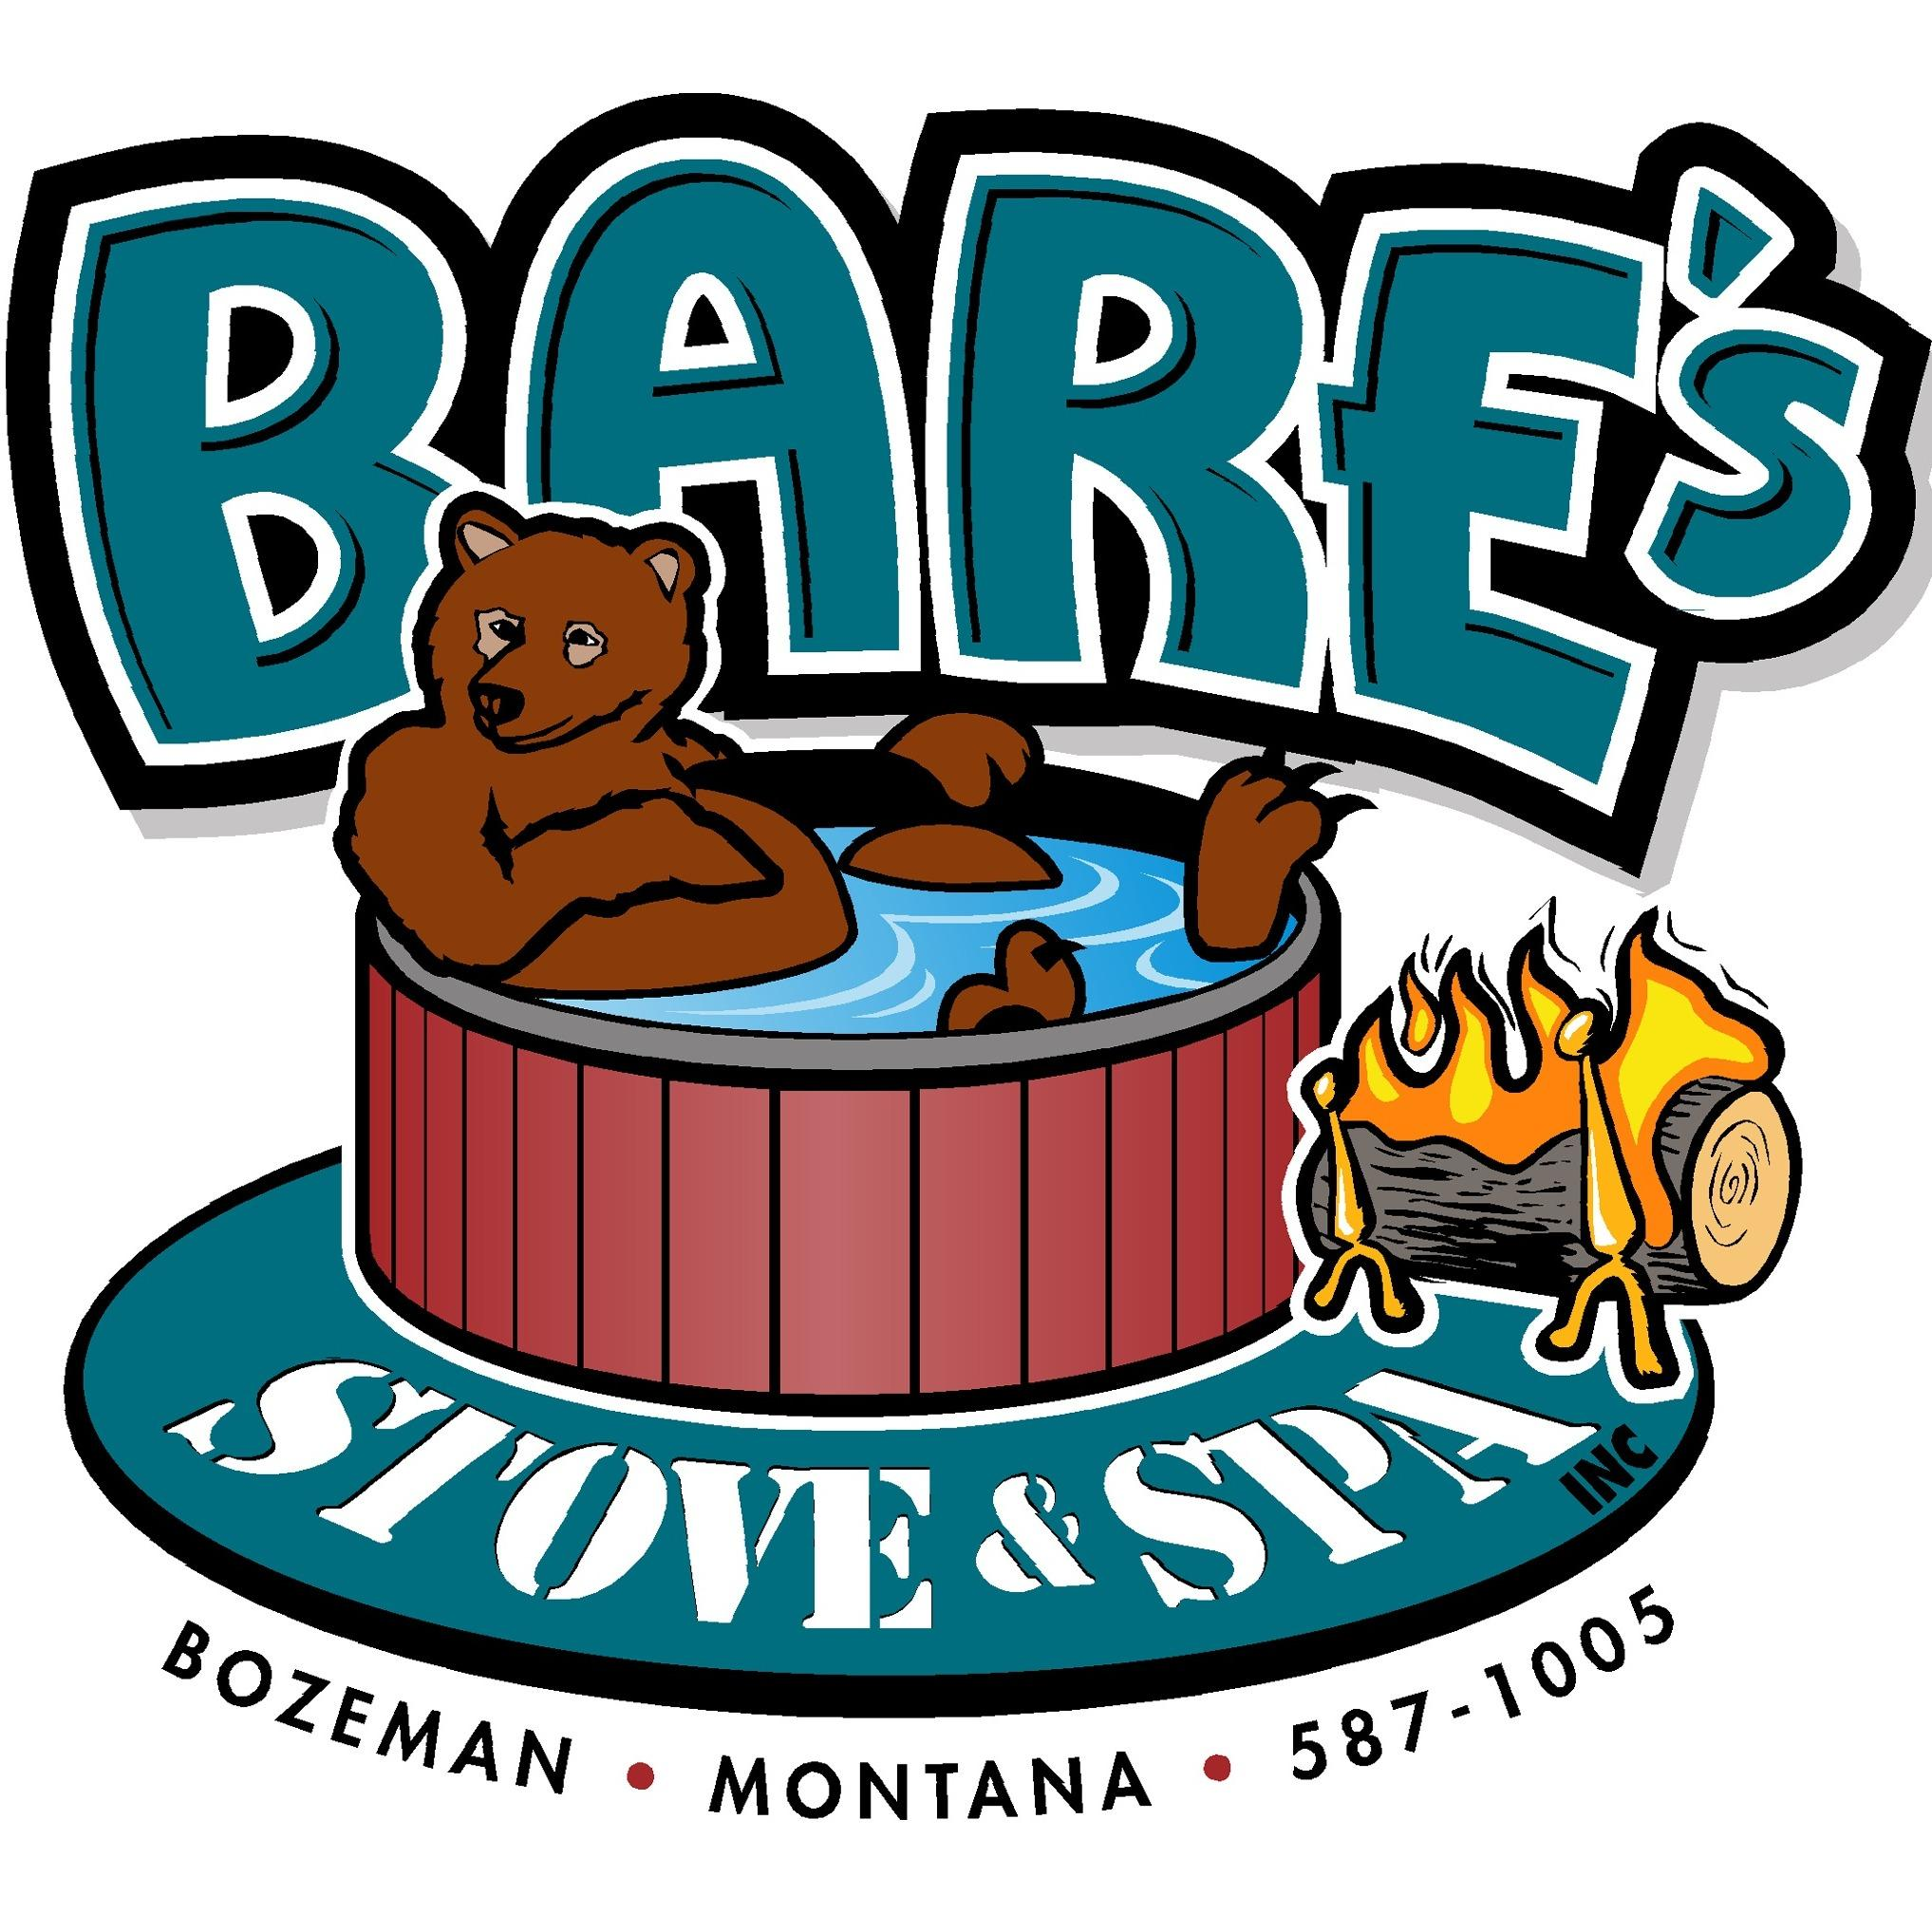 Fireplace Store in MT Bozeman 59715 Bare's Stove & Spa 301 Evergreen Dr.  (406)587-1005